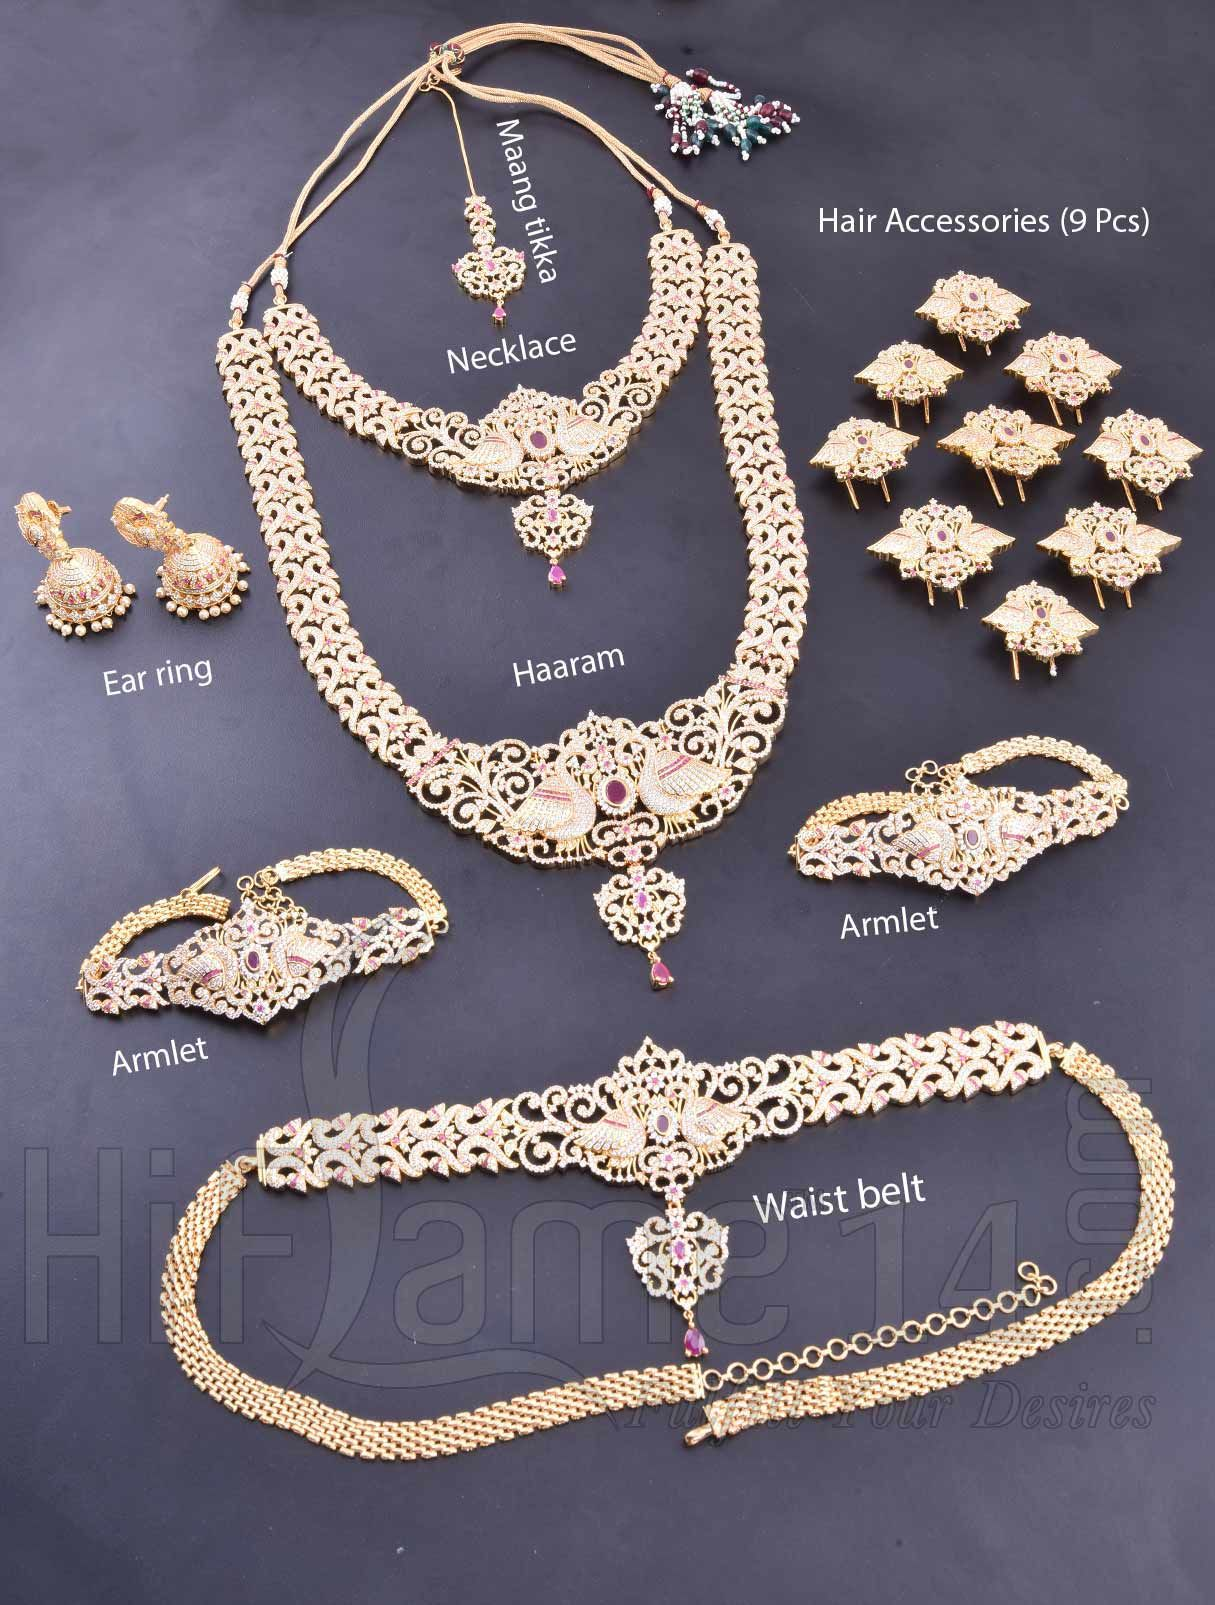 Rent Special Bridal Jewellery Sets For Wedding Occasions Indian Wedding Jewelry Diamond Bridal Sets Dancing Diamond